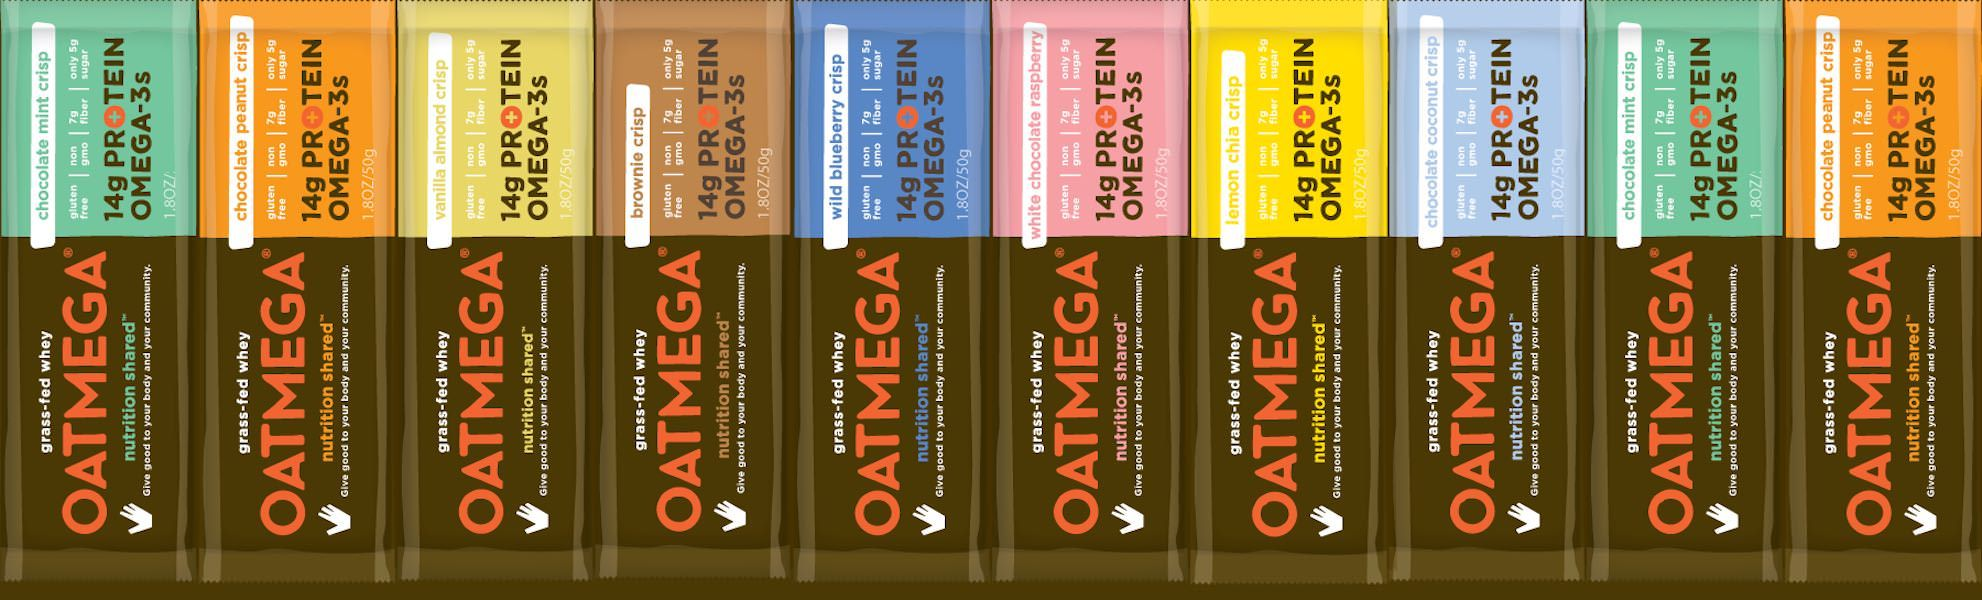 What You Need to Know About Oatmega Bars